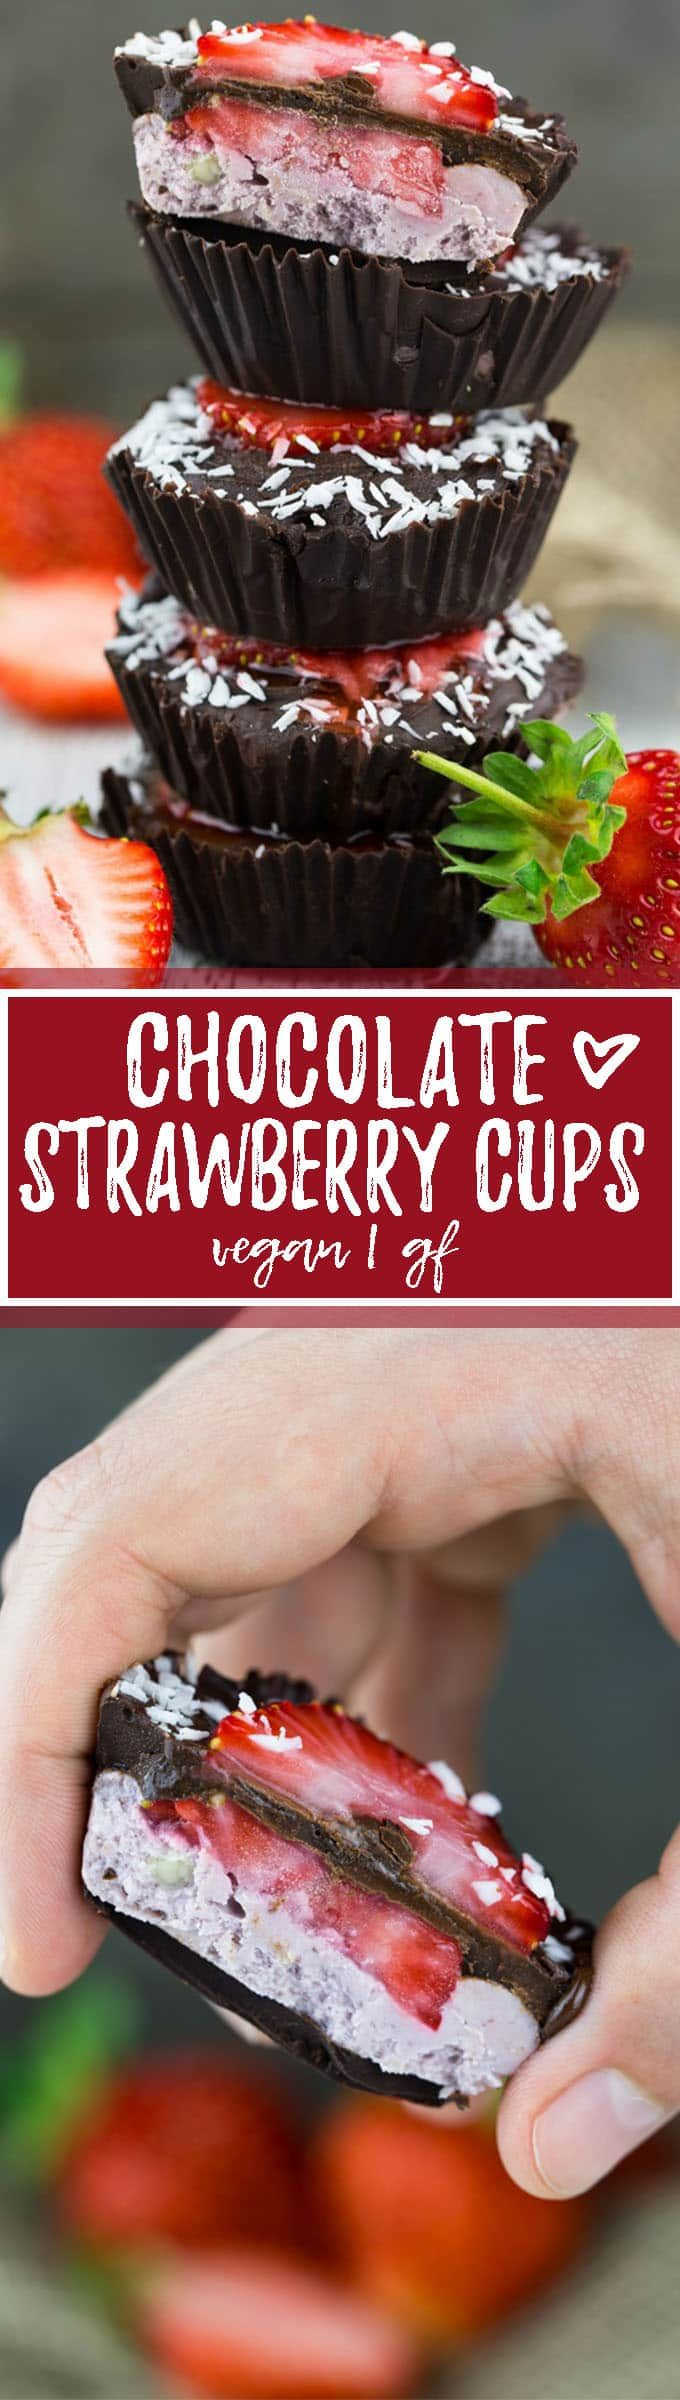 These vegan chocolate cups with strawberry filling are the perfect vegan dessert. And you need only five ingredients to make them: dark chocolate, strawberries, cashews, maple syrup, and coconut milk. It's such an easy vegan recipe! And they're super rich and chocolatey. Big YUM! <3   veganheaven.org